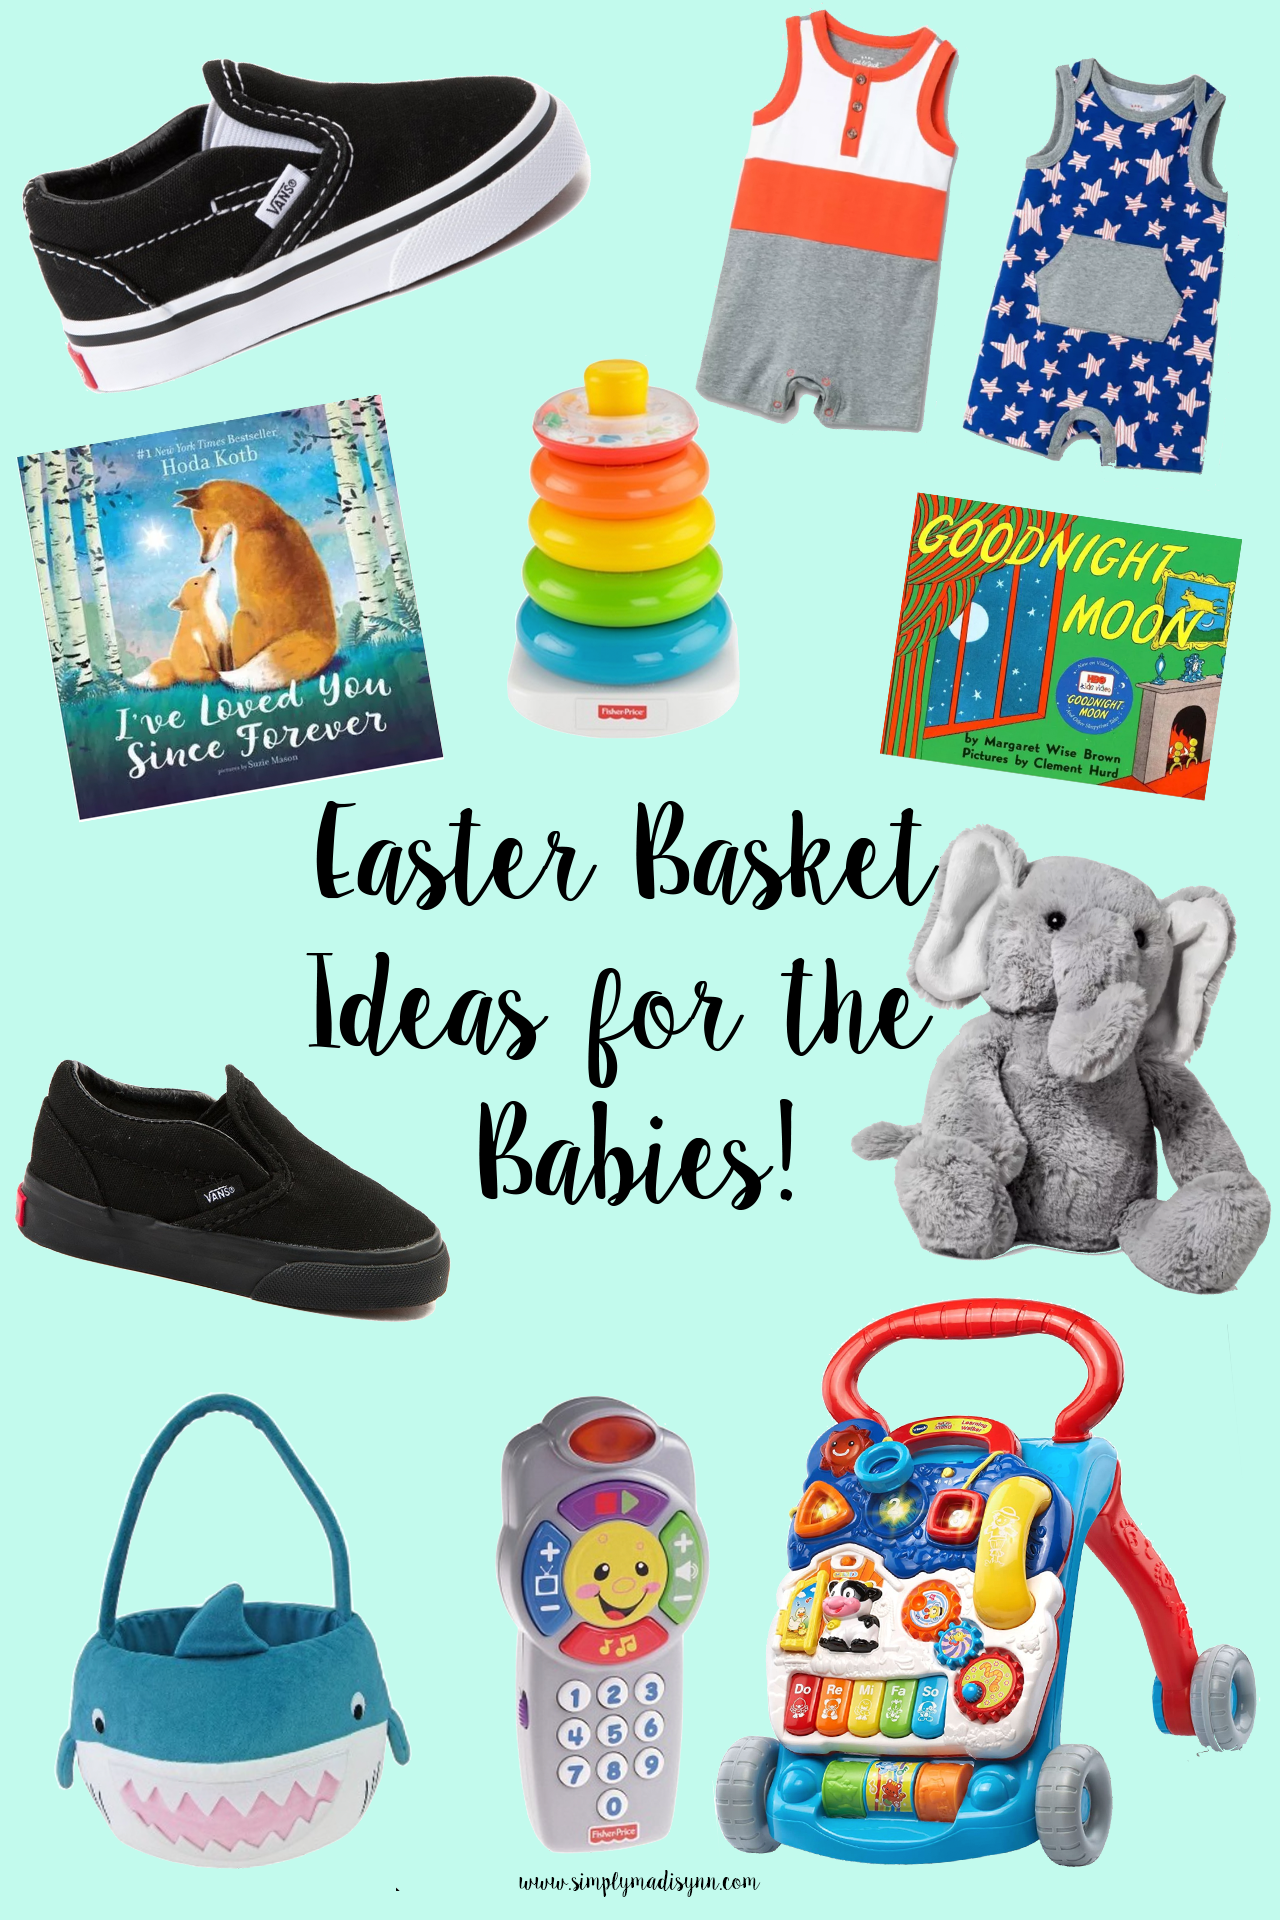 Easter Basket Ideas for the Babies!